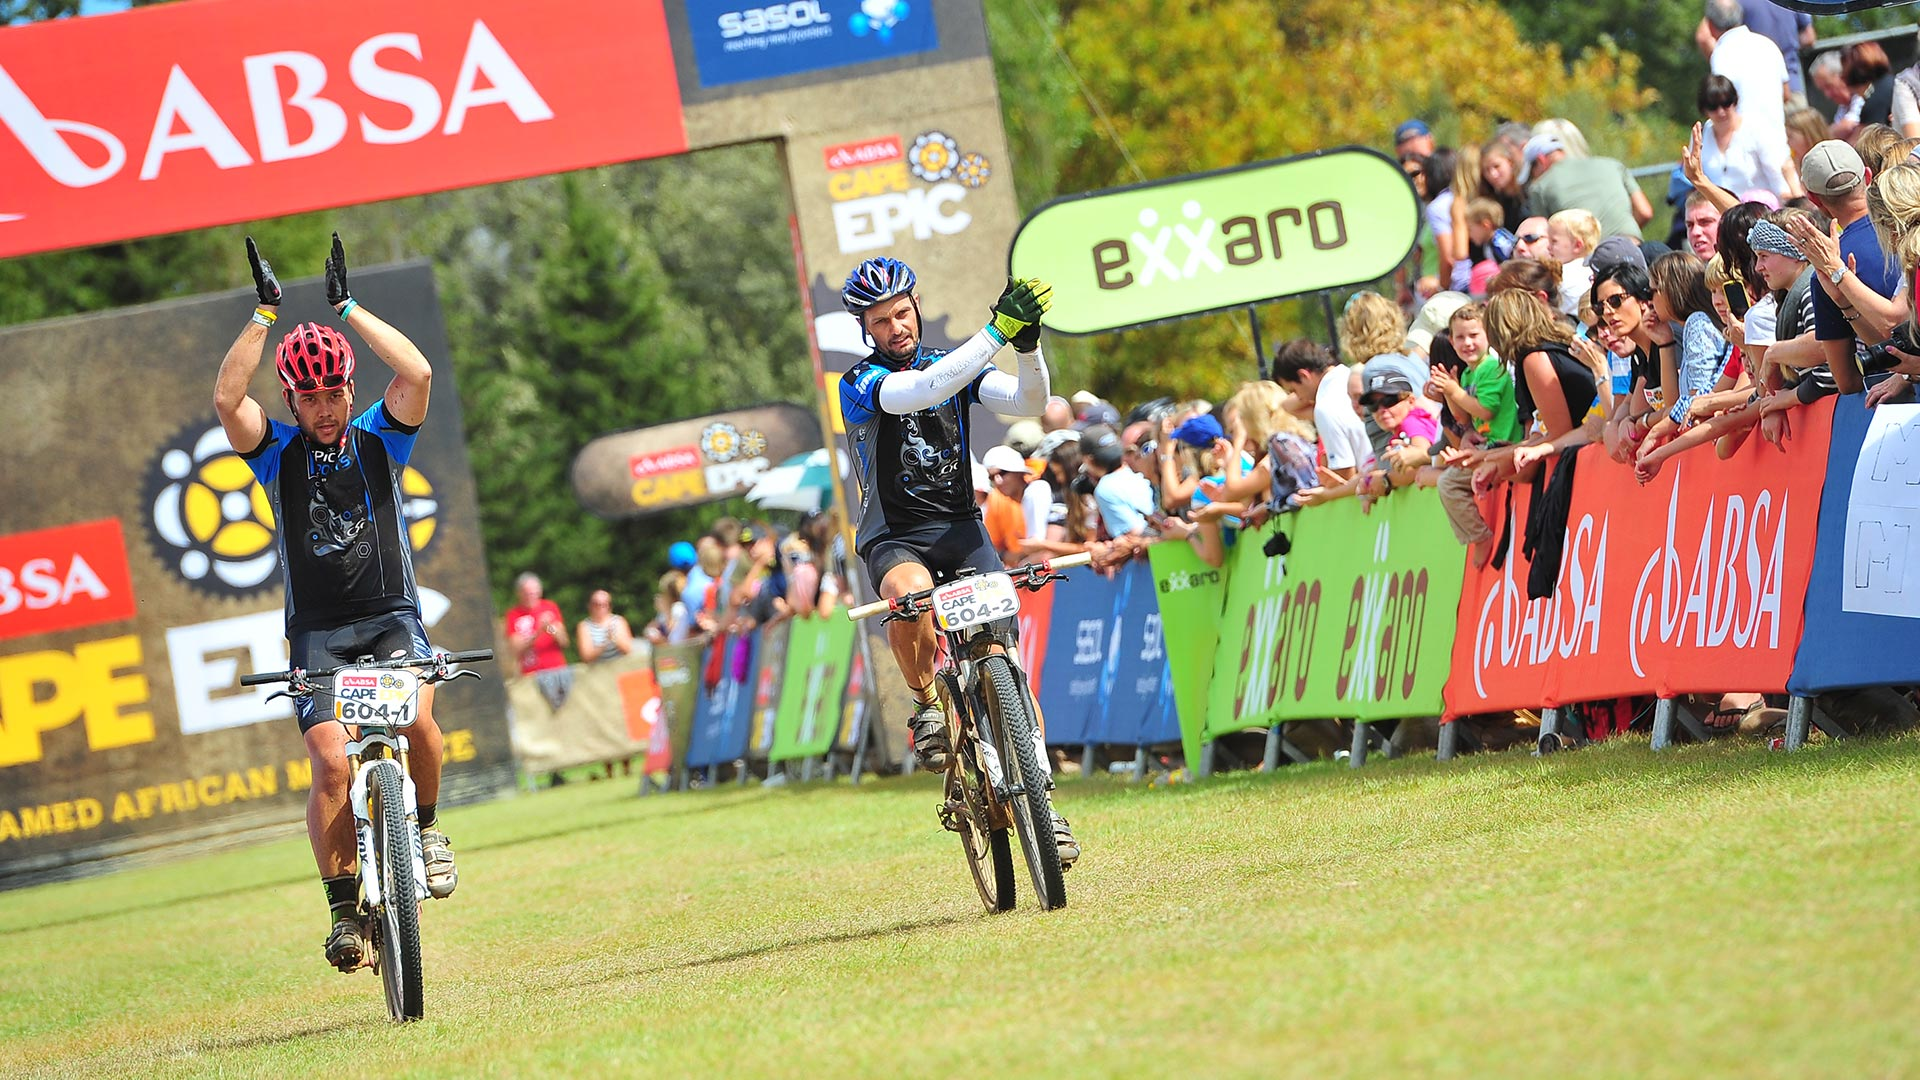 A man and Coen van Tonder after the finishing line clapping at the audience of the Cape Epic race while riding their mountain bikes